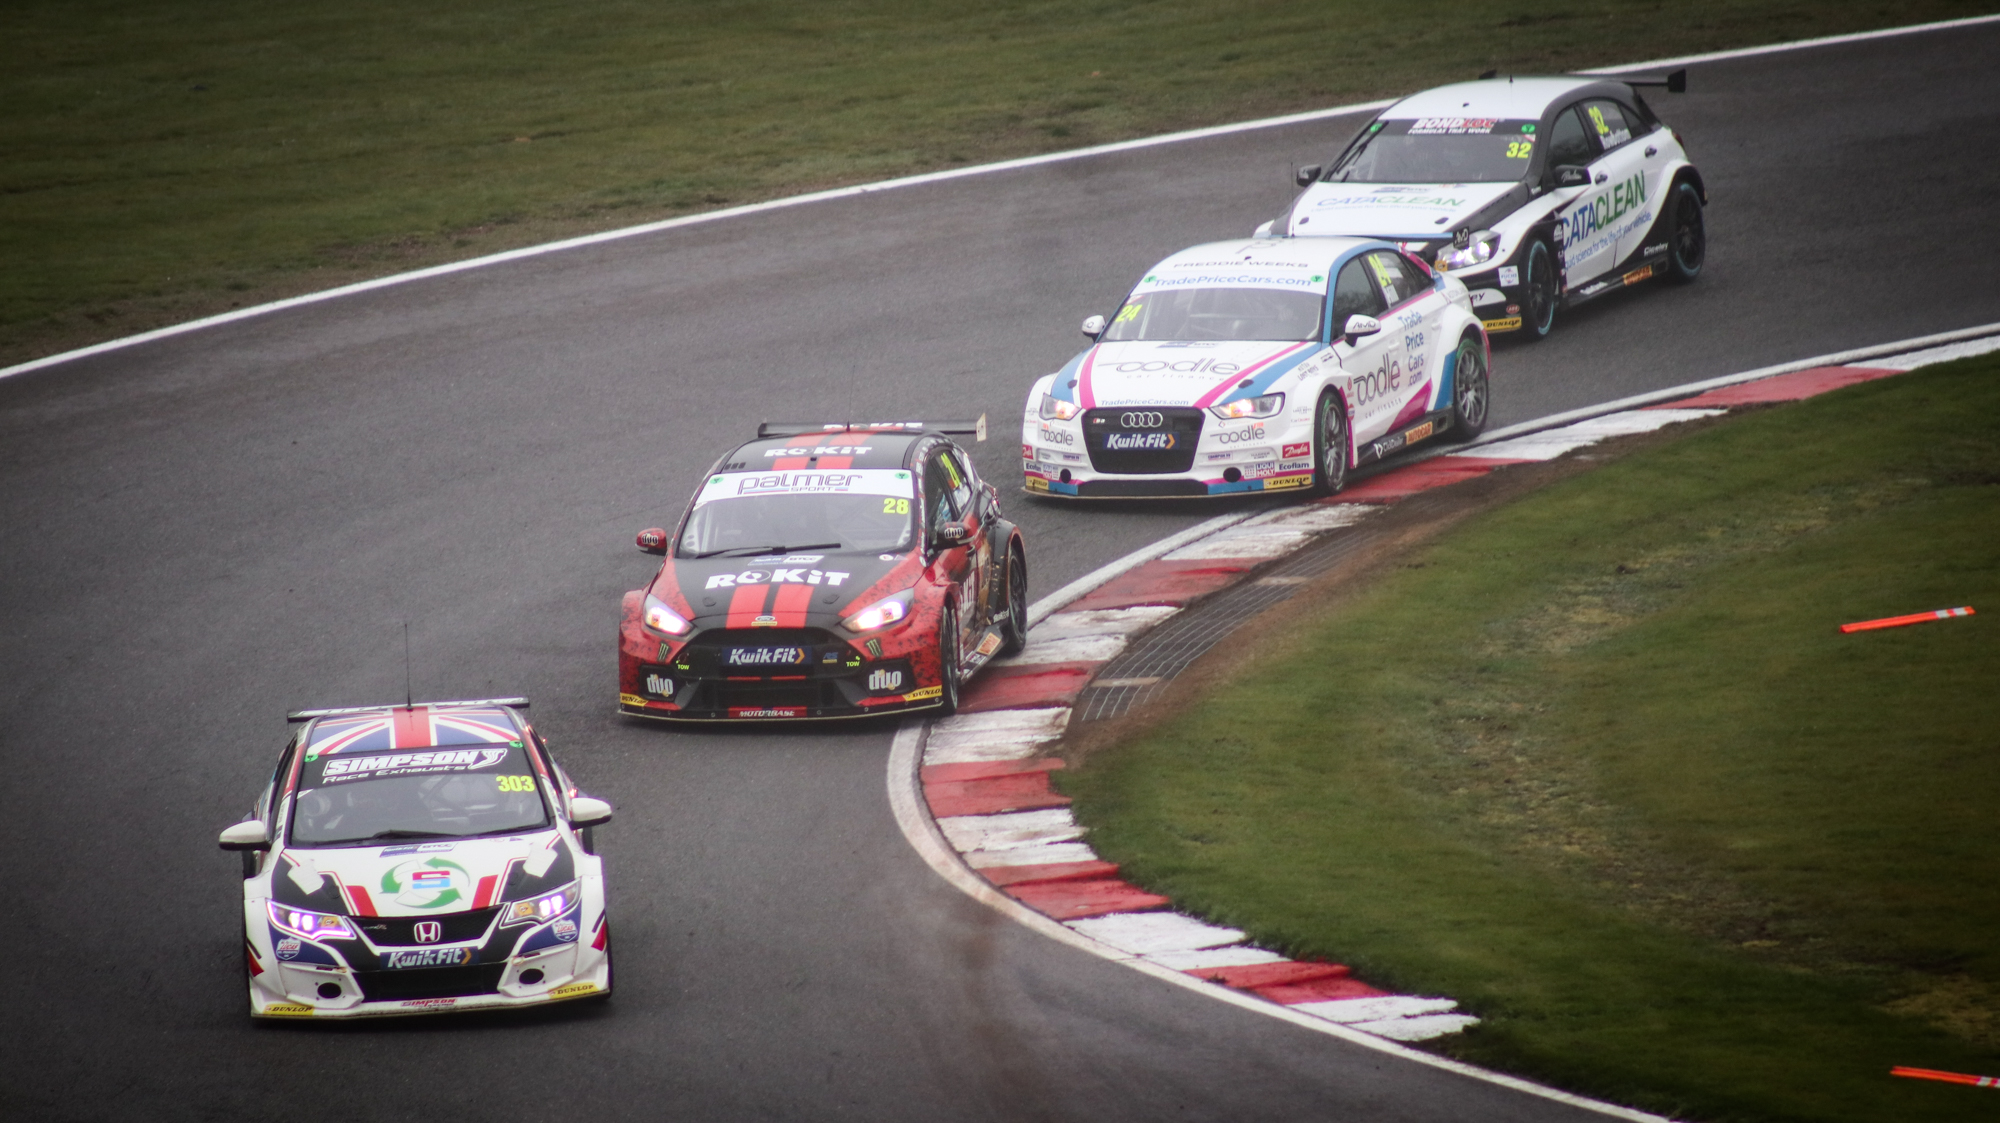 BTCC cars on circuit at Knockhill